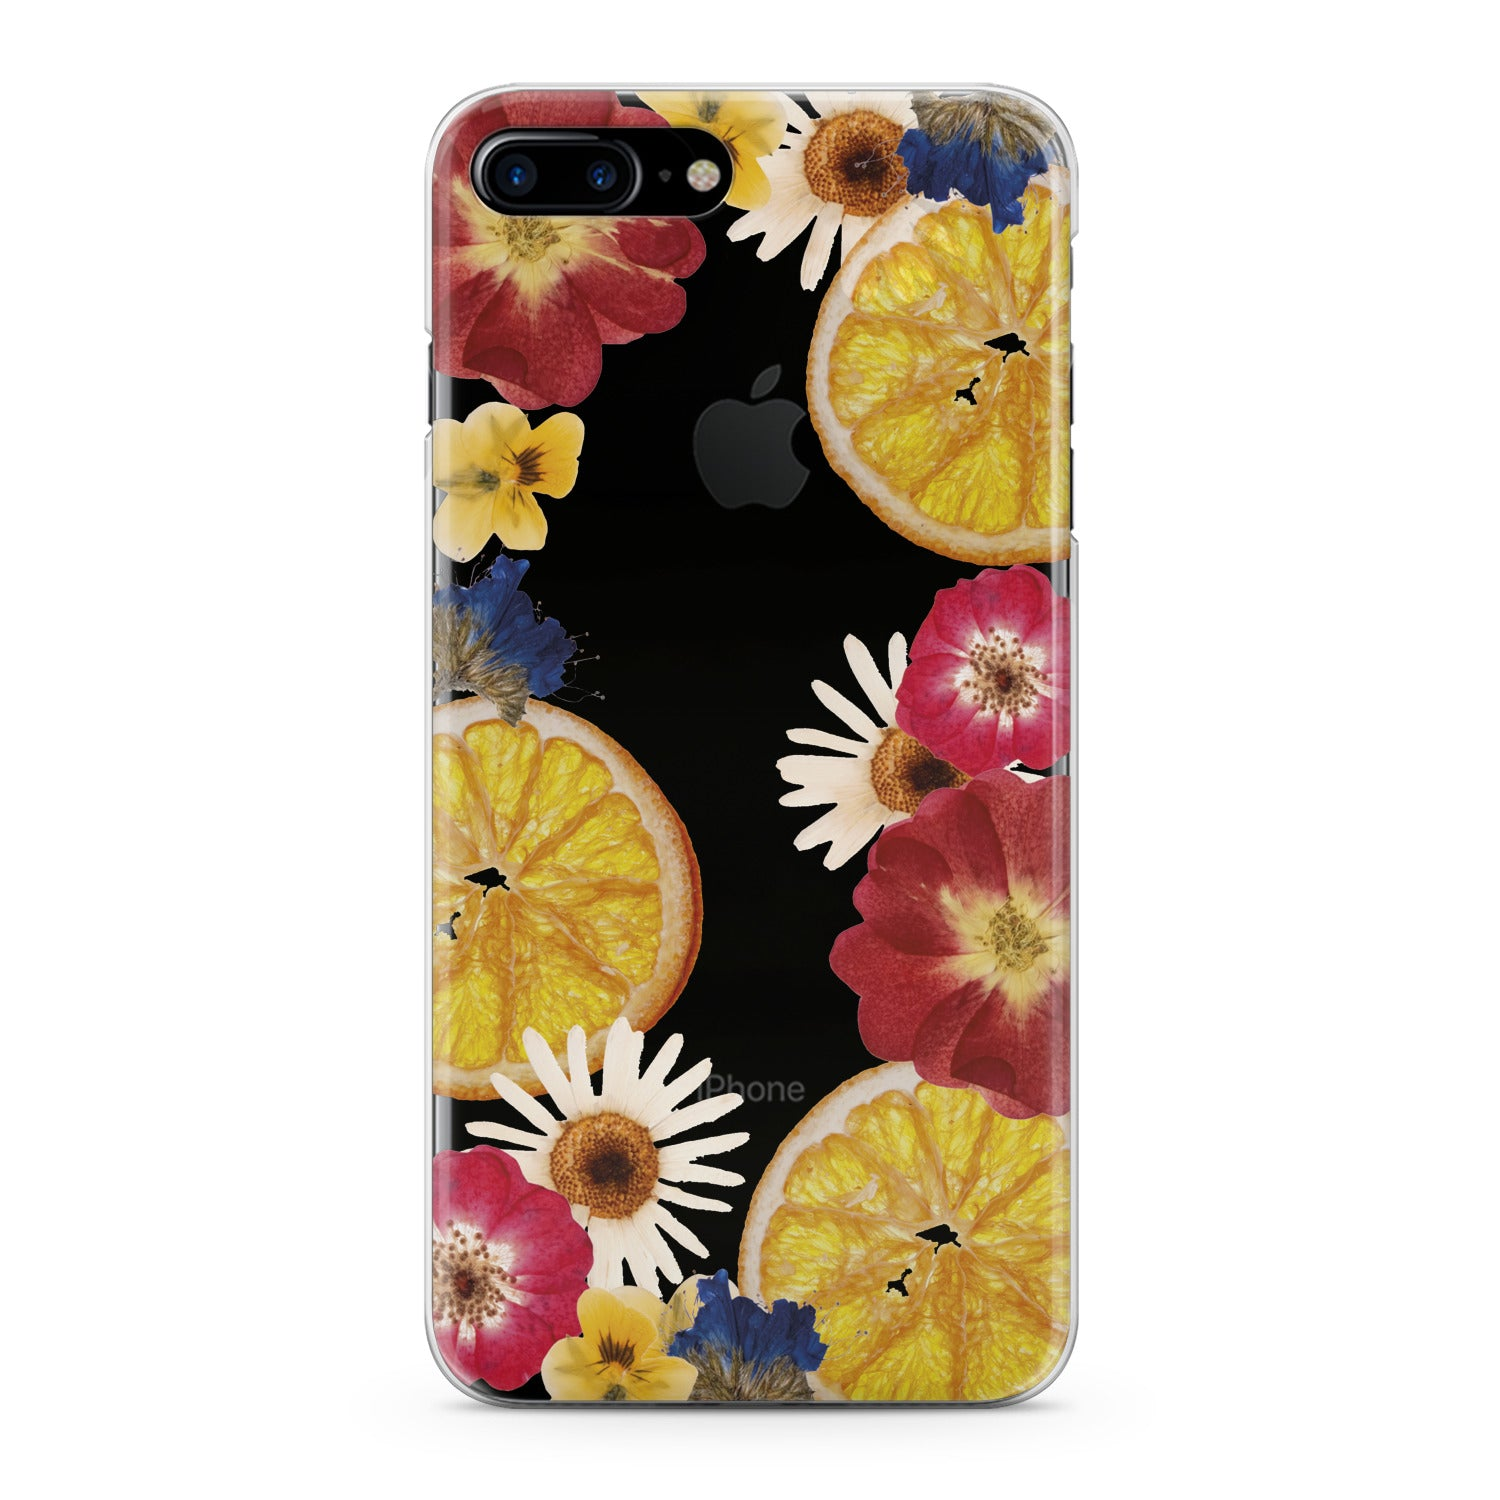 Lex Altern Floral Citrus Phone Case for your iPhone & Android phone.